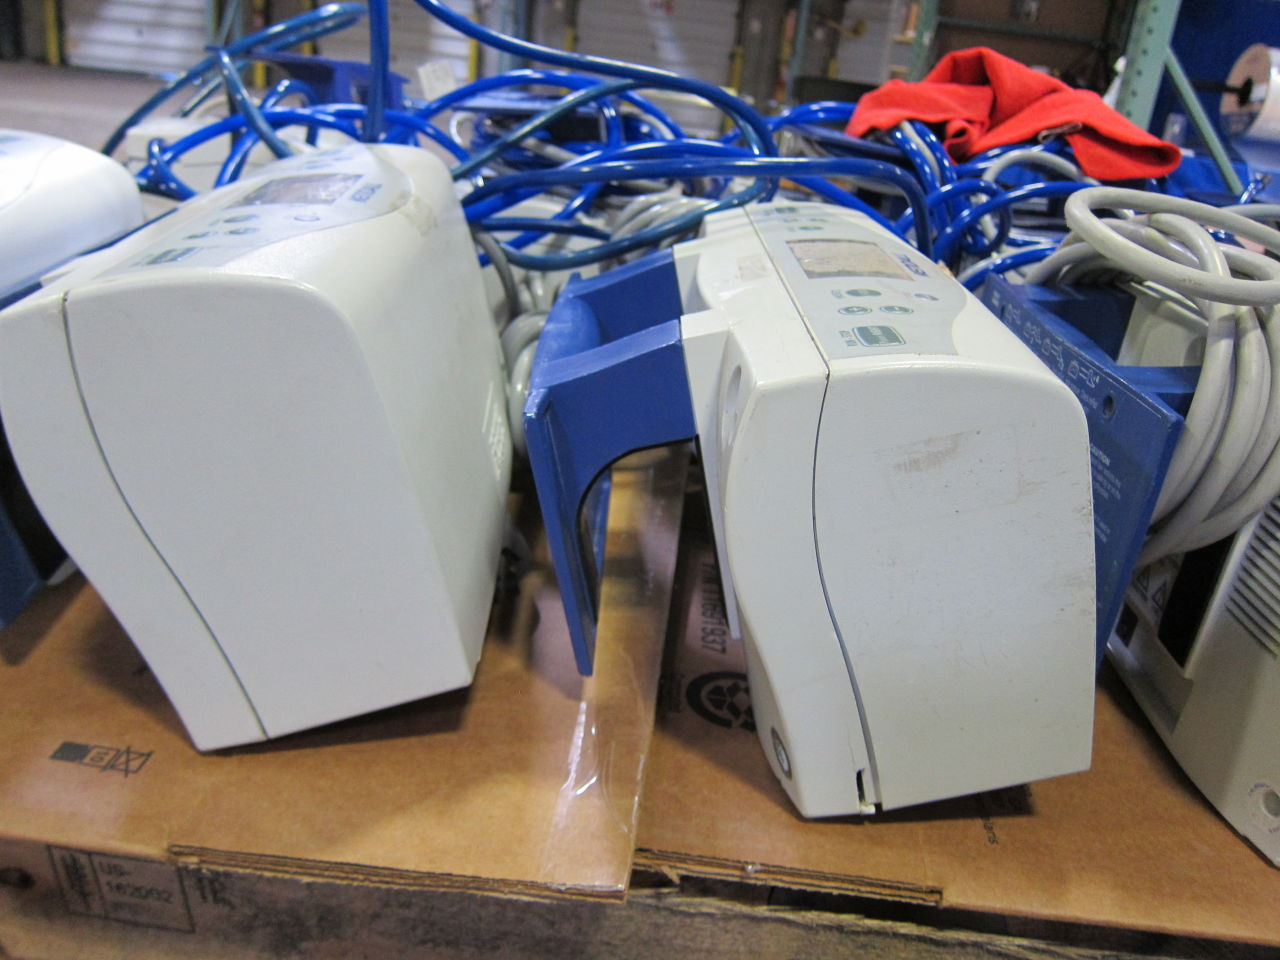 KENDALL Av Impulse 6060  - Lot of 7 DVT Pump